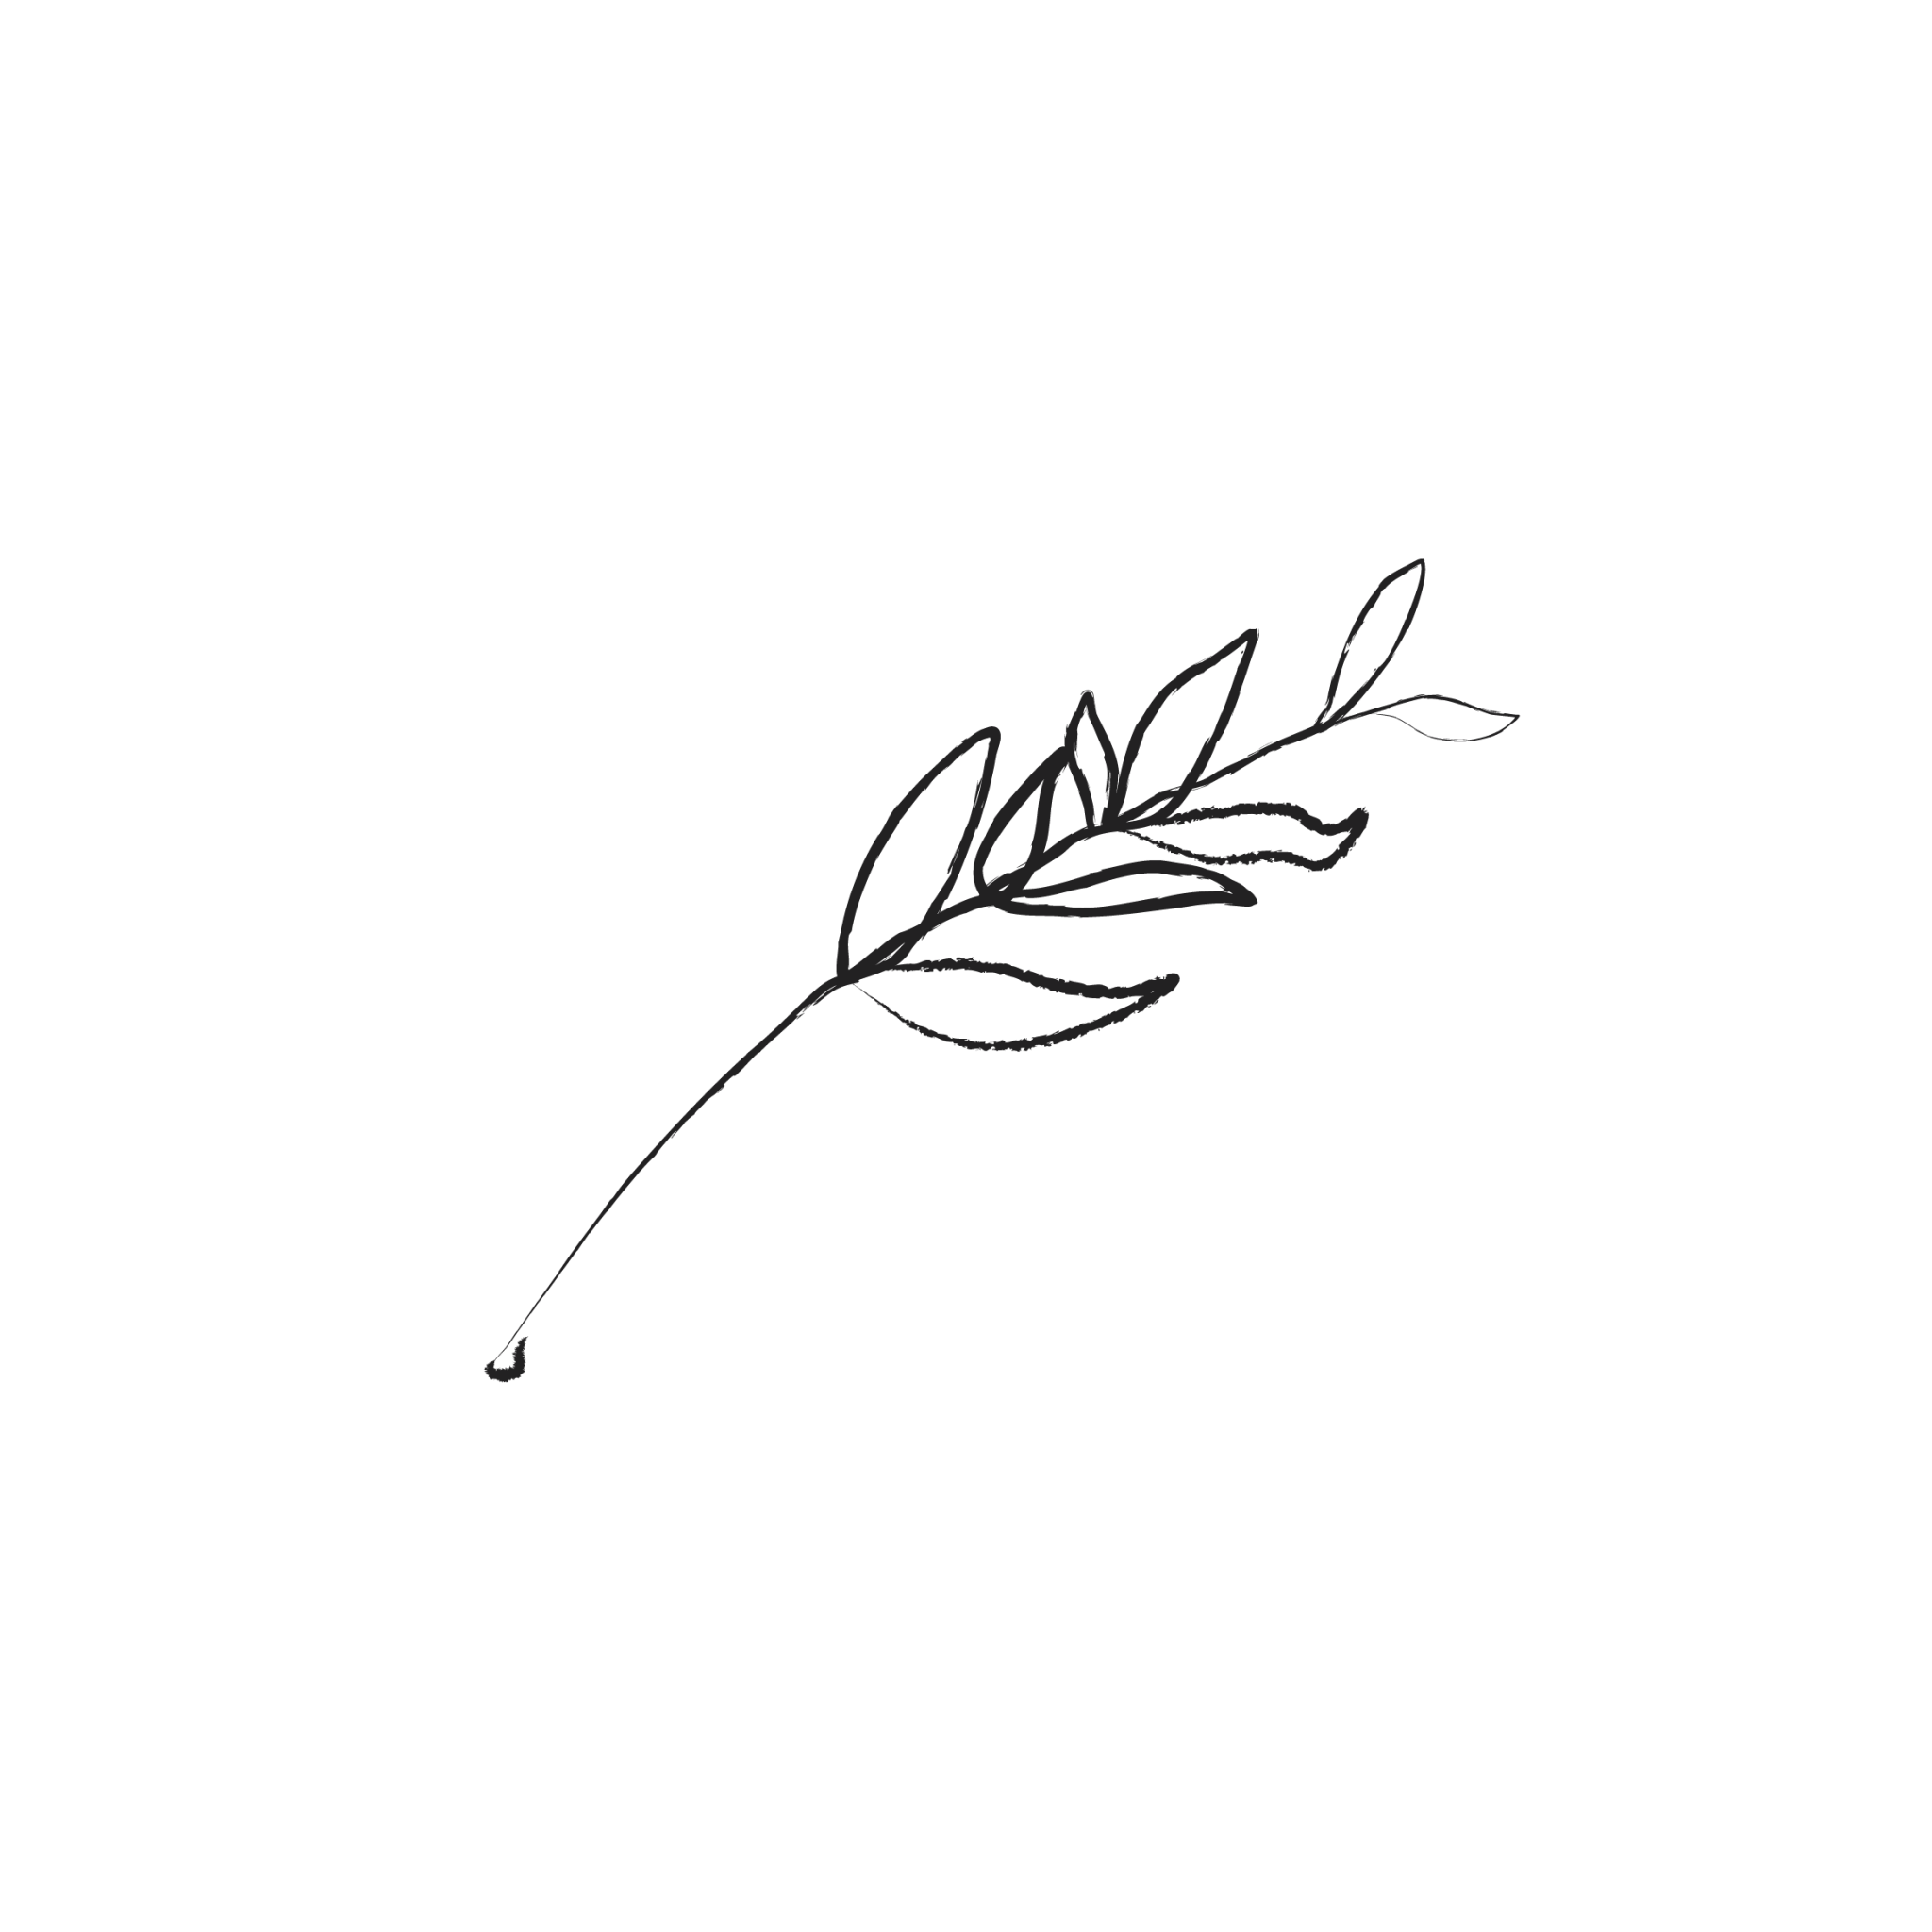 Illustrated leaves